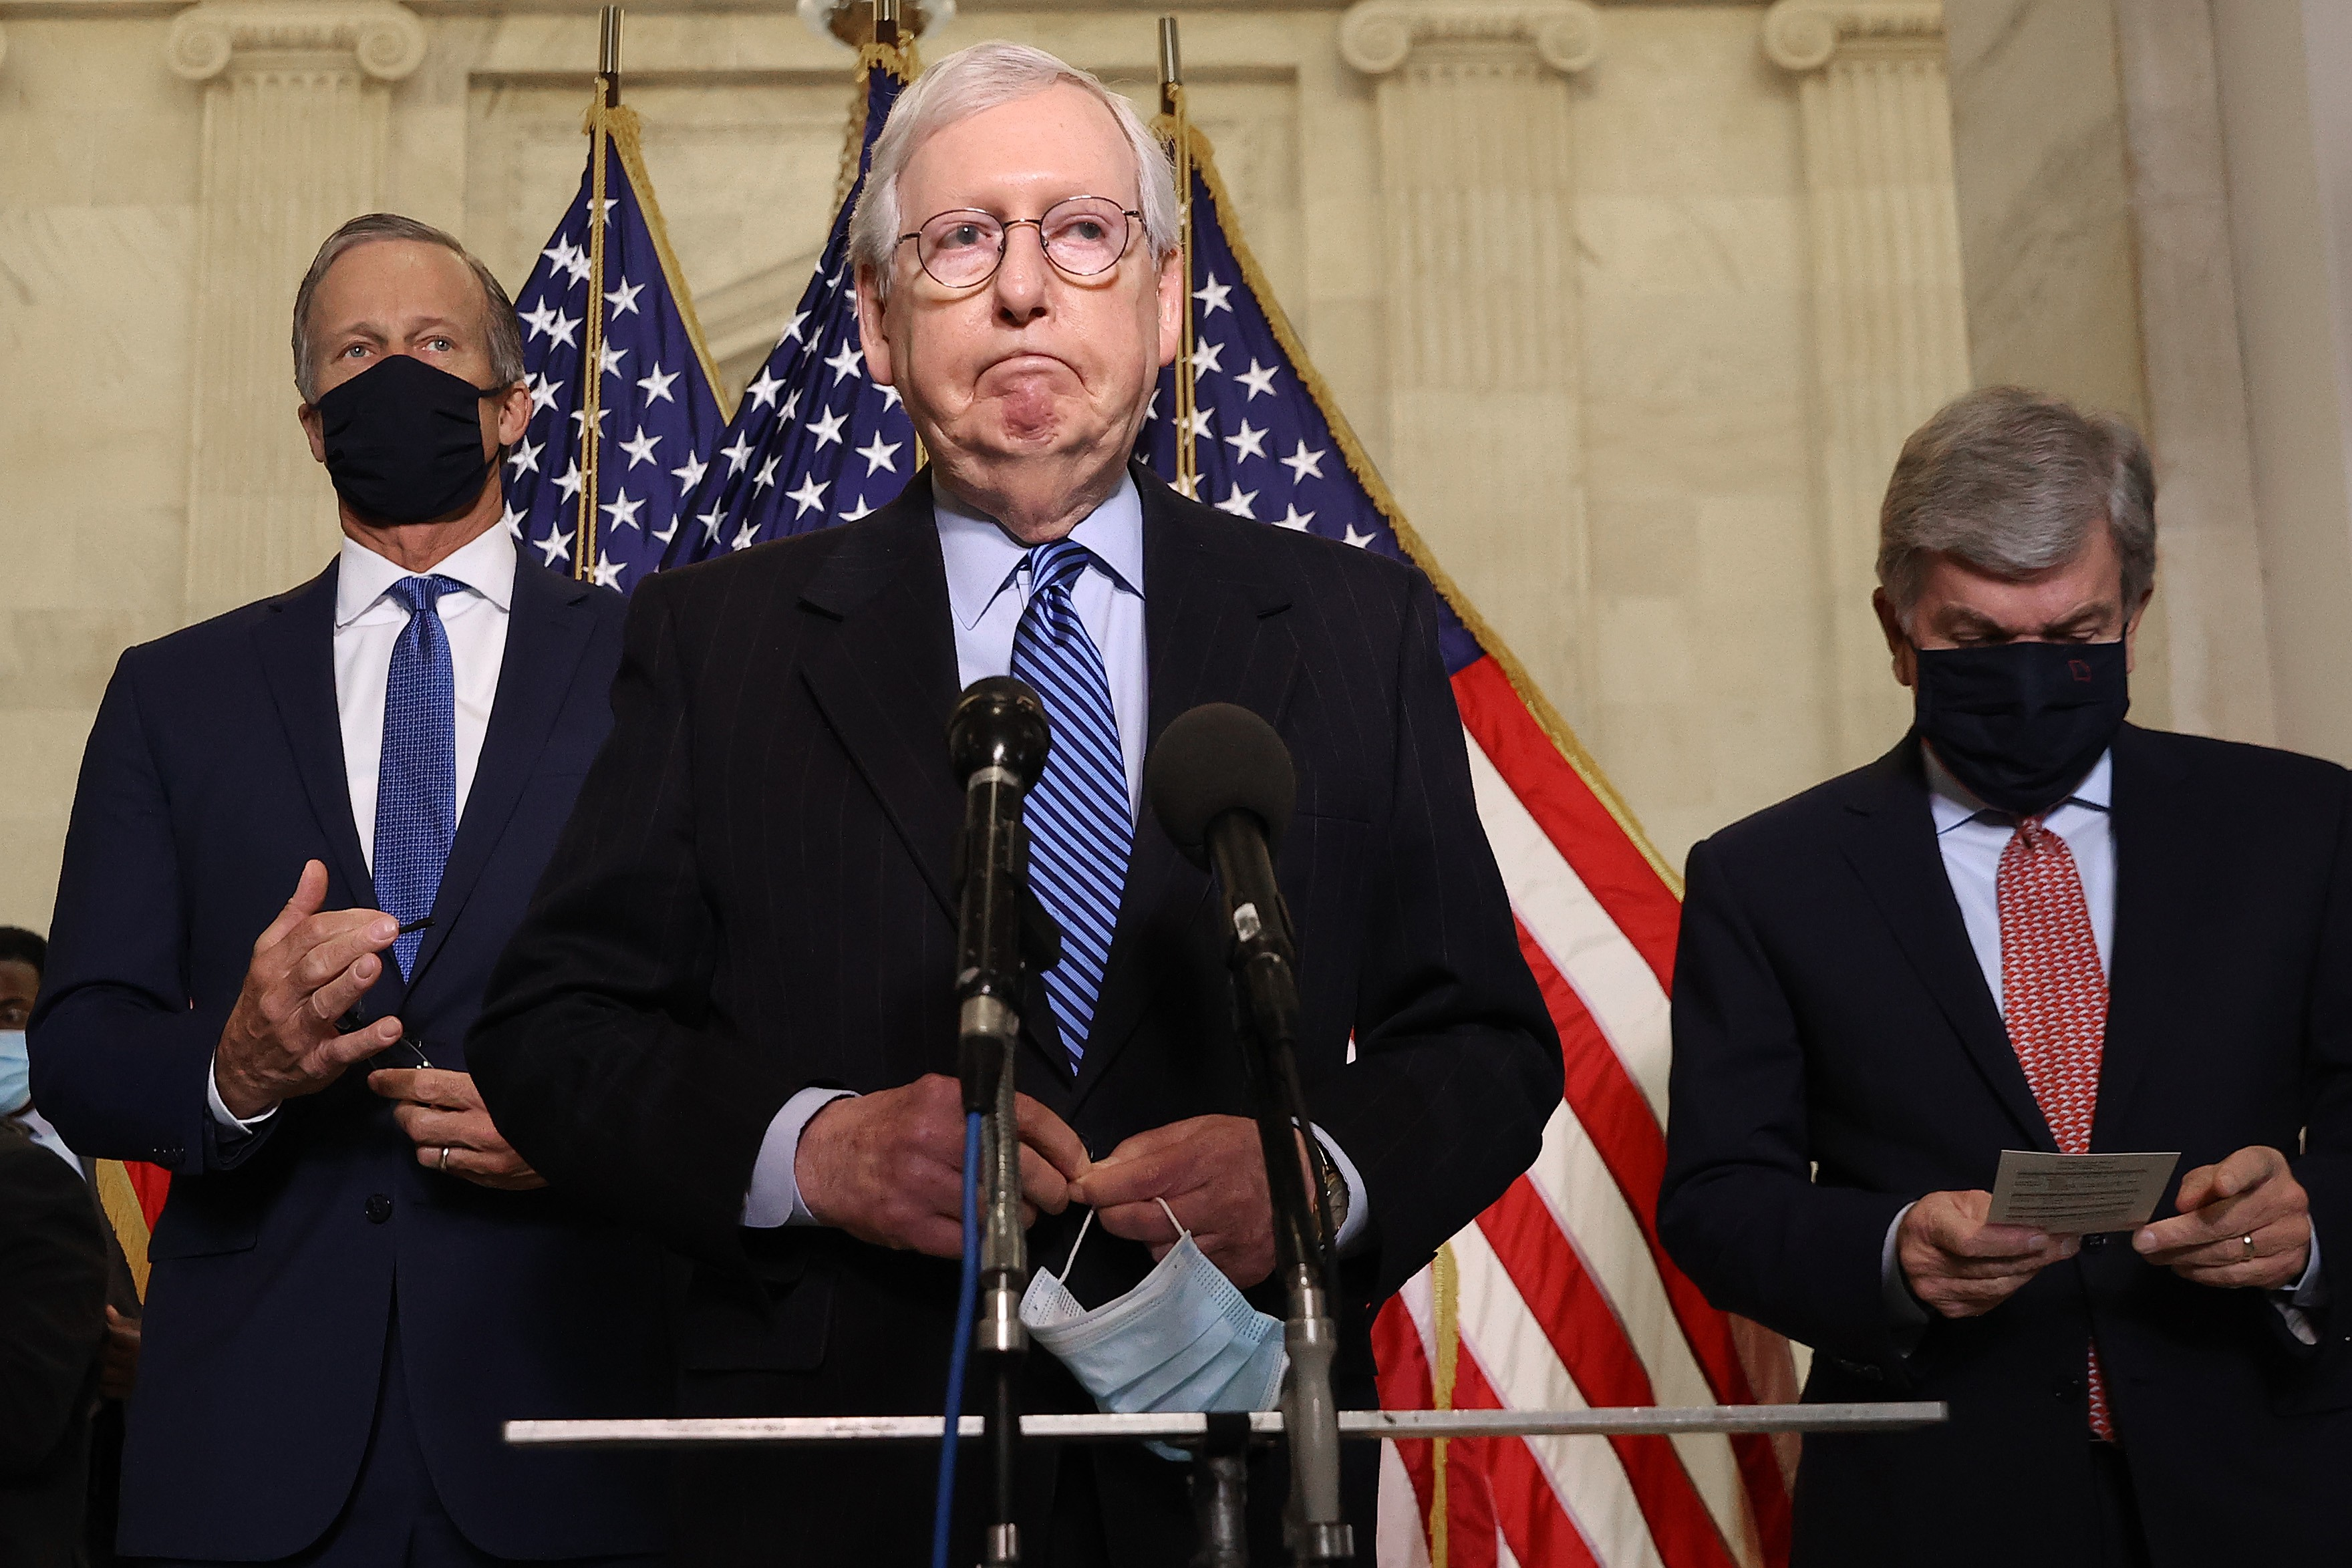 Mitch McConnell speaking into a mic.